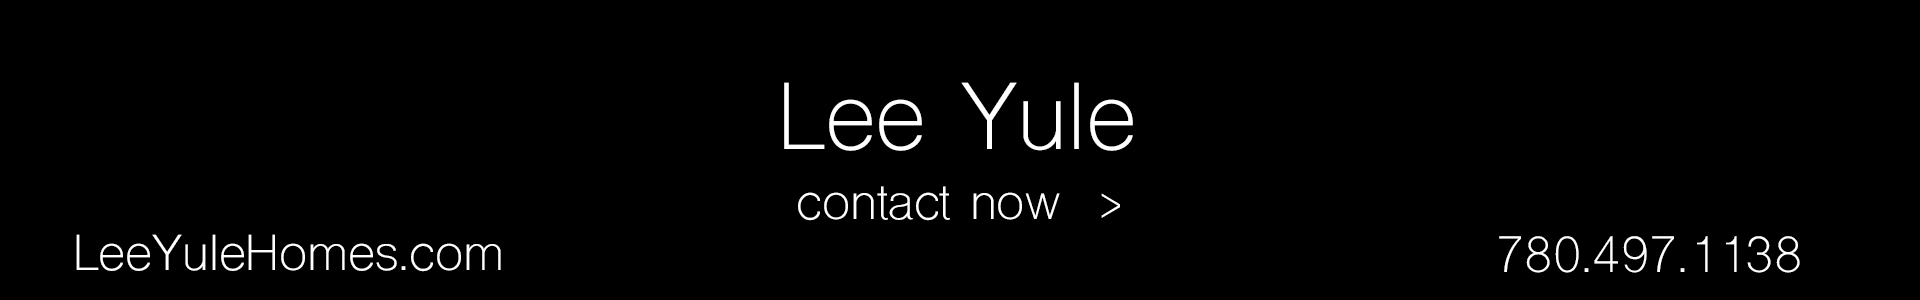 local-awareness-lee-yule